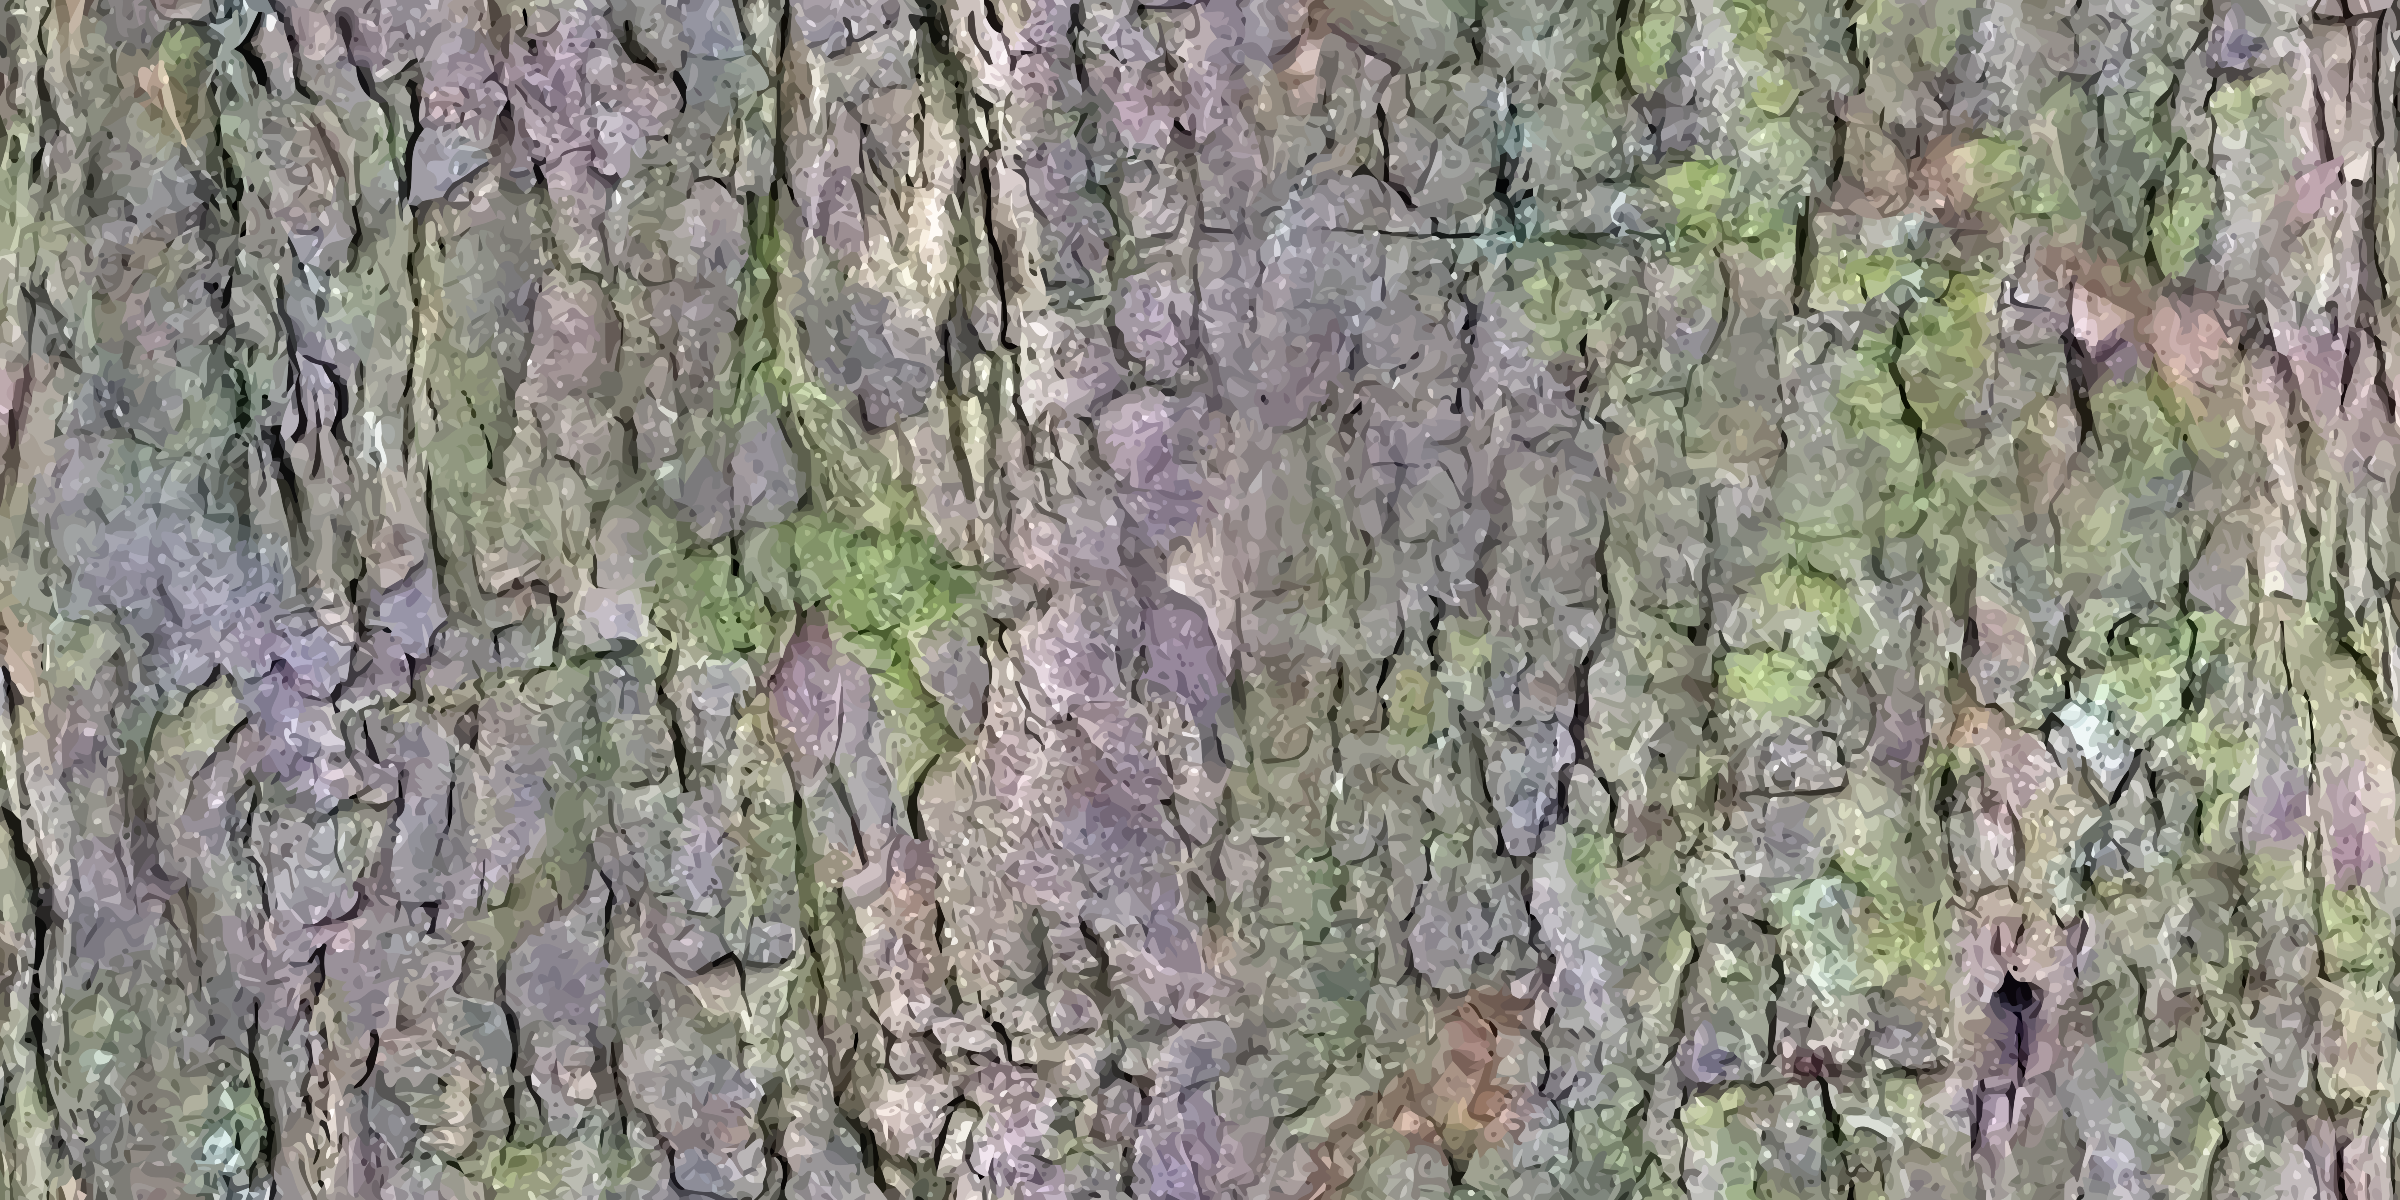 Rough bark by Firkin